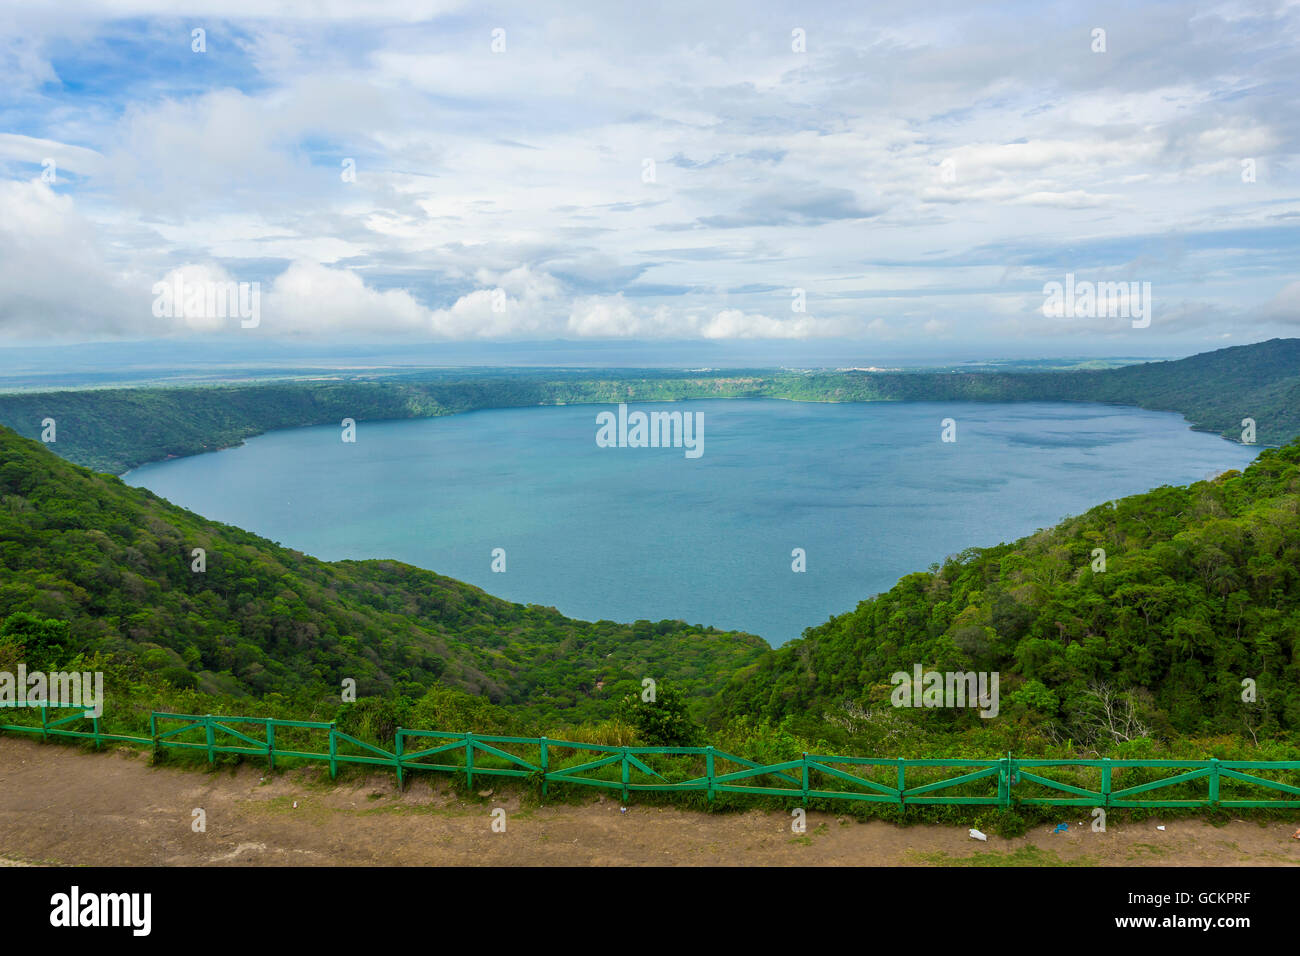 View of Apoyo Lagoon from Mirador de Catarina - Stock Image